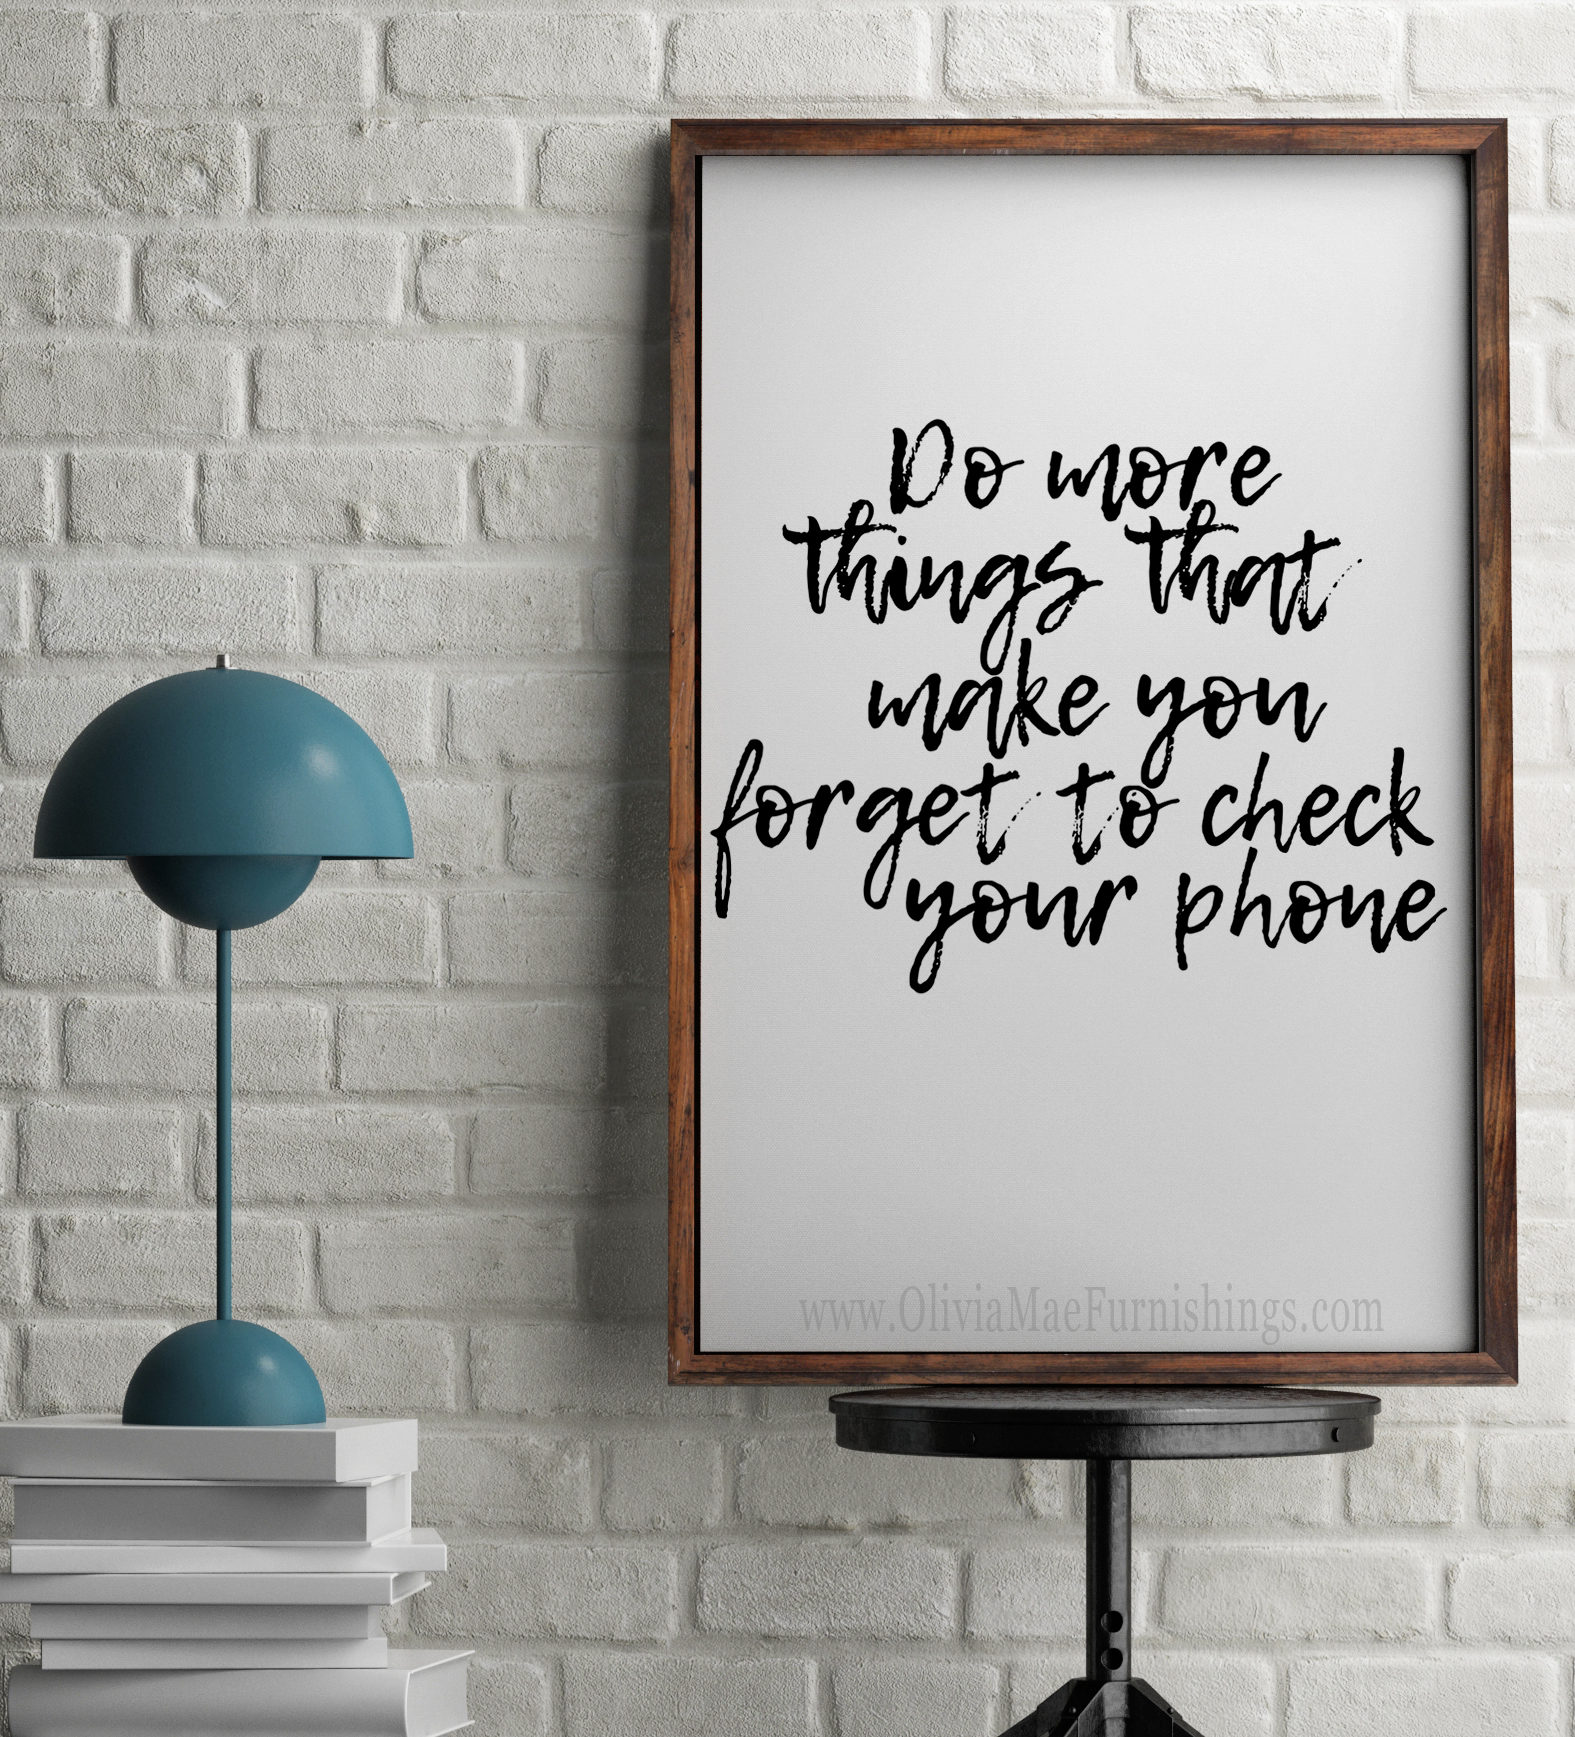 Do More Things That Make You Forget To Check Your Phone 5x7